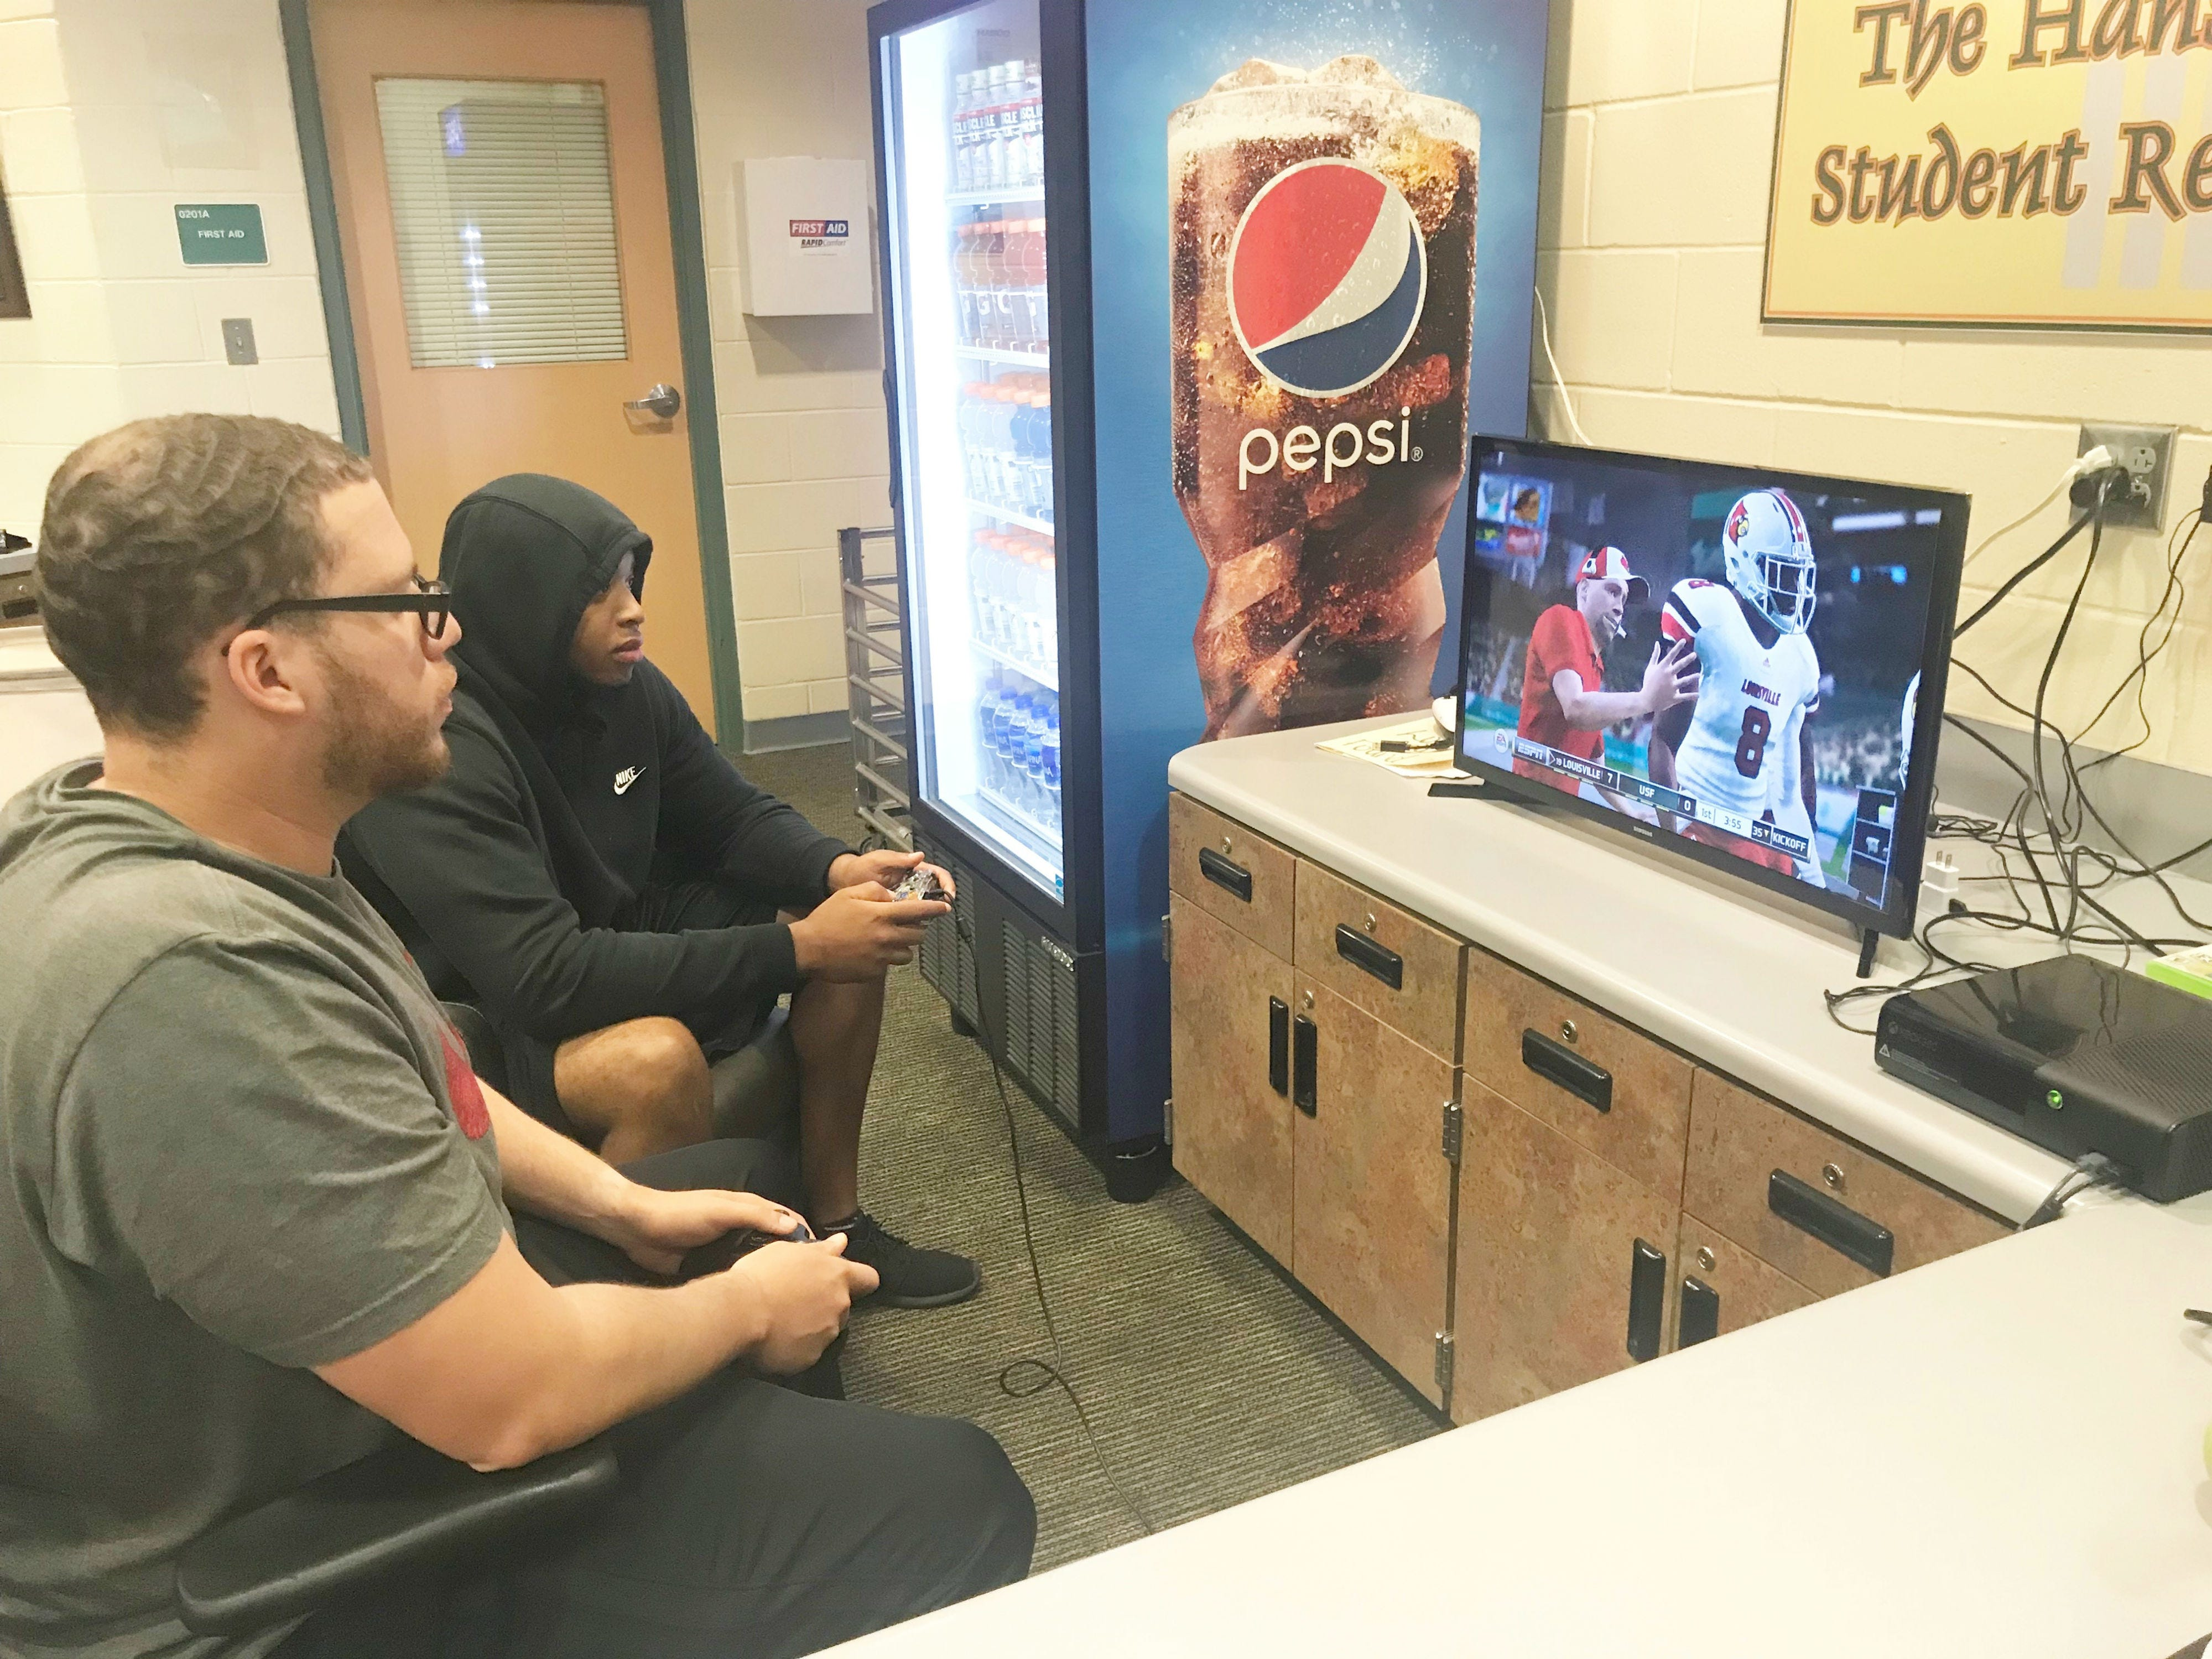 FAMU graduate assistant coaches Mateo Kambui (foreground) and Desmond Noird play NCAA Football on Xbox One. Kambui used Louisville while Noird played with South Florida. The Cardinals won 21-17.